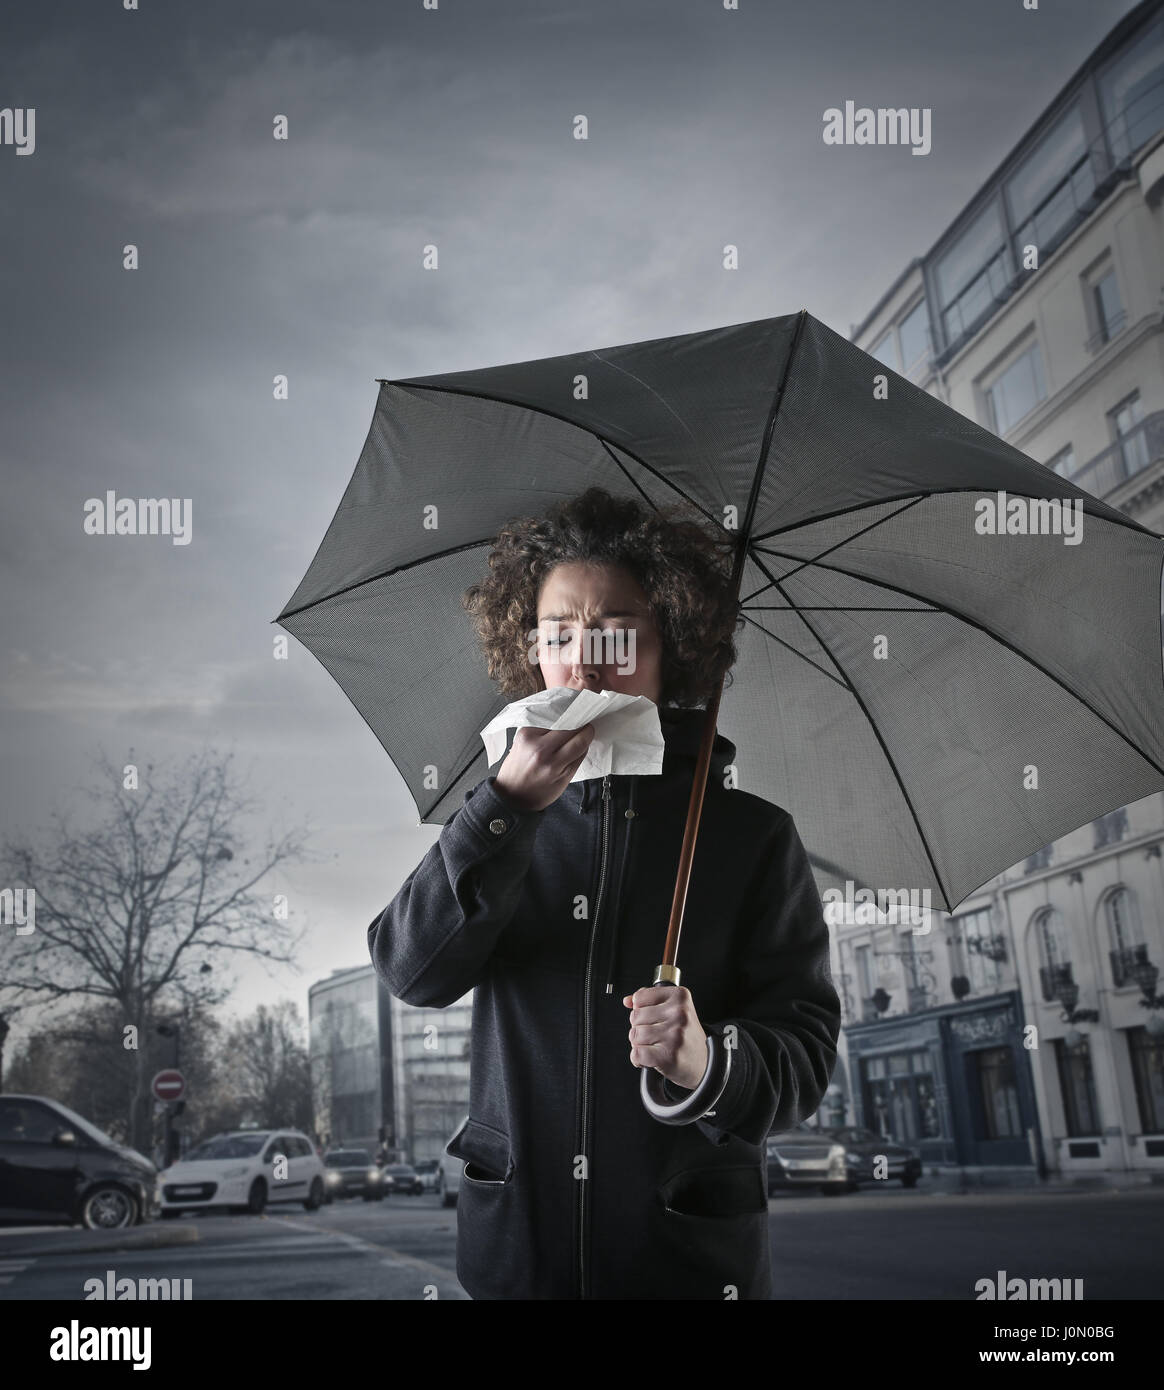 Sick woman with umbrella - Stock Image